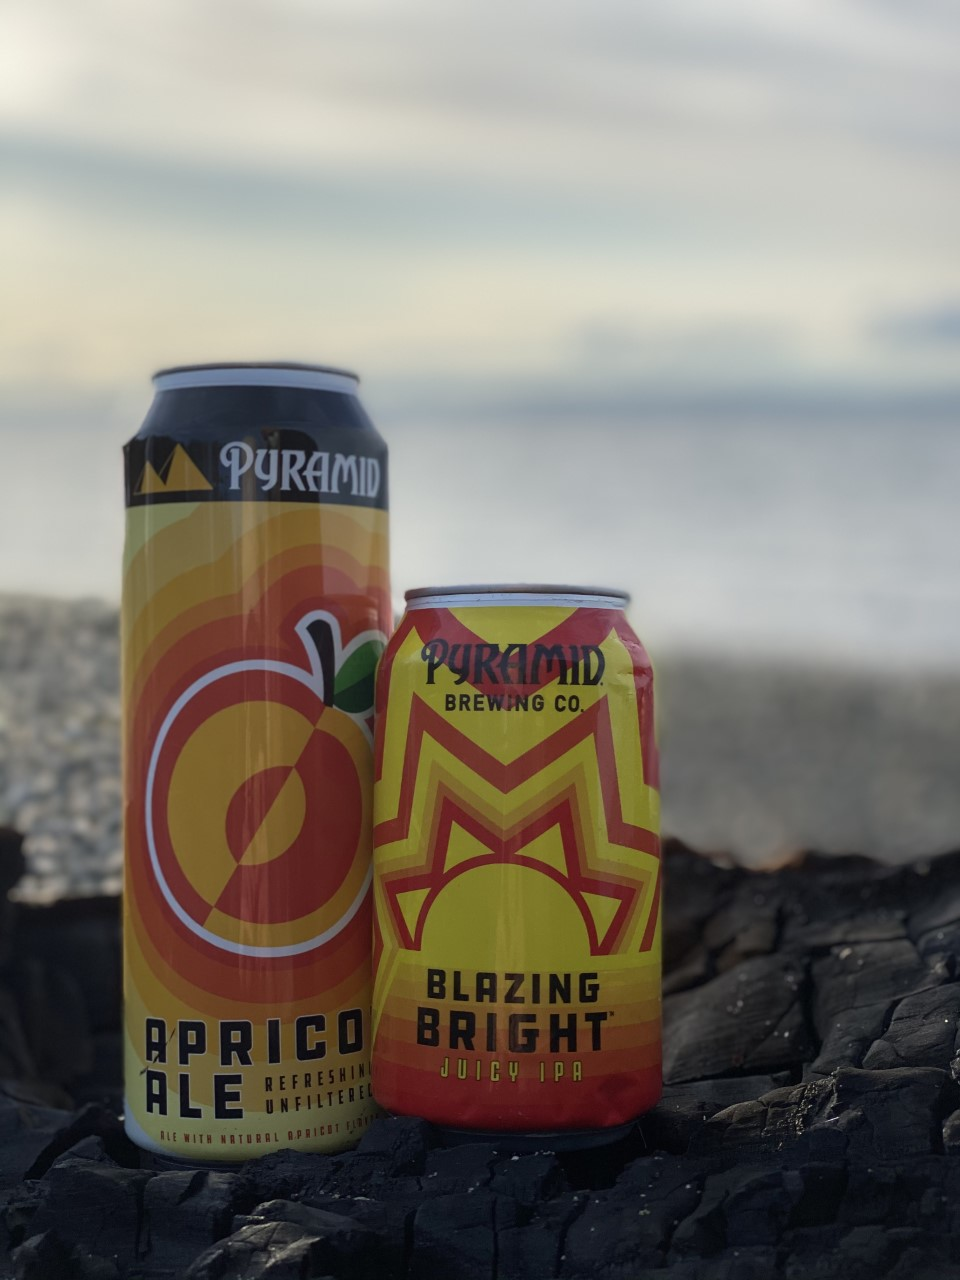 Two cans of Pyramid beer(Apricot Ale and Blazing Bright IPA) sit on a rock with a rocky shoreline in the background.